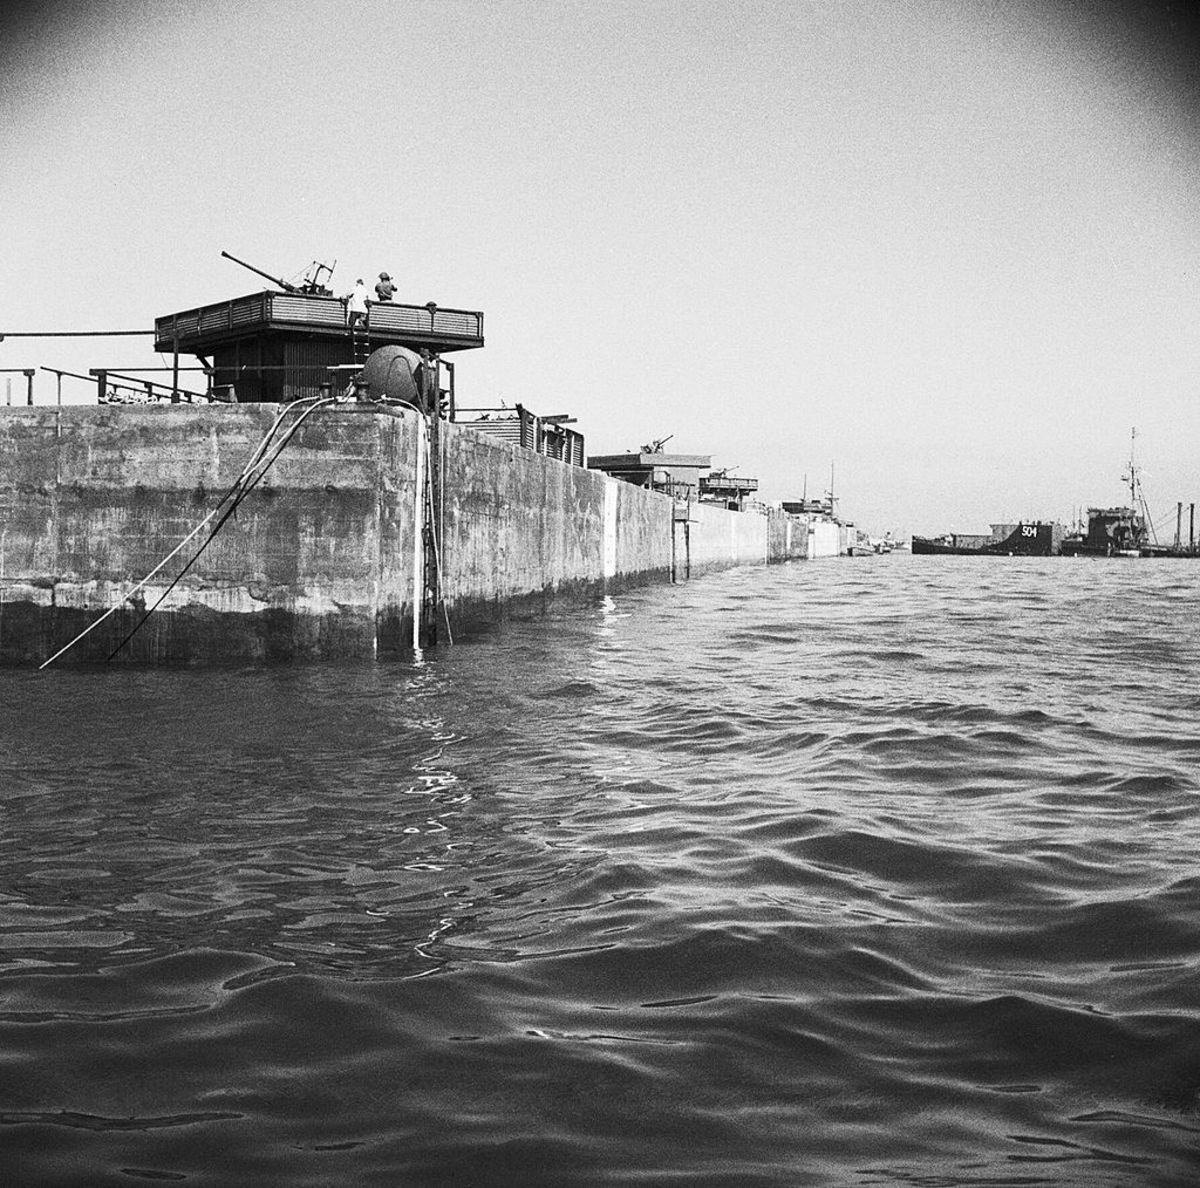 Mulberry in place at Arromanches, with anti-aircraft guns installed June 12, 1944.